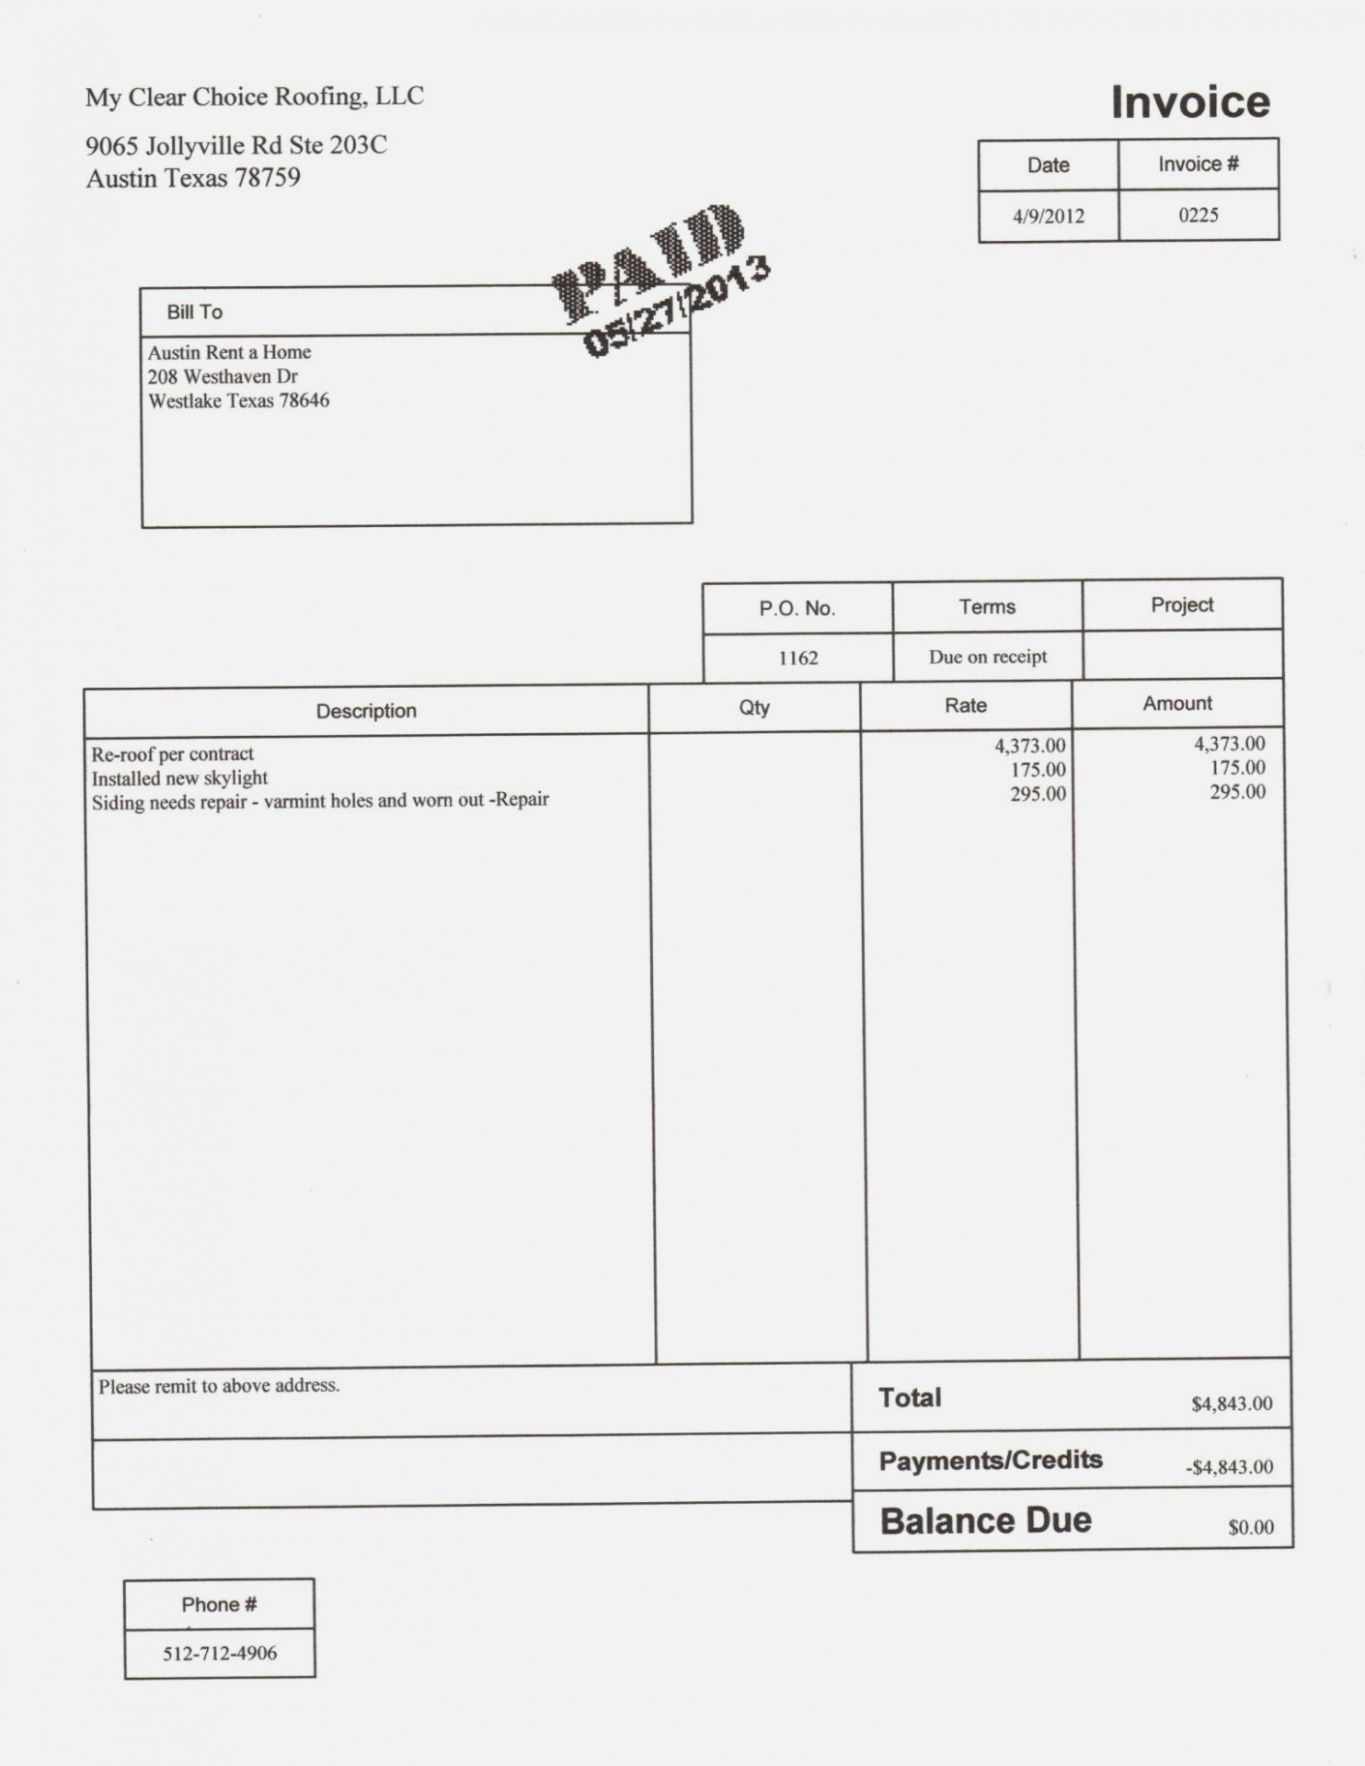 Get Our Example Of Roof Repair Invoice Template Appliance Repair Invoice Template Roof Repair